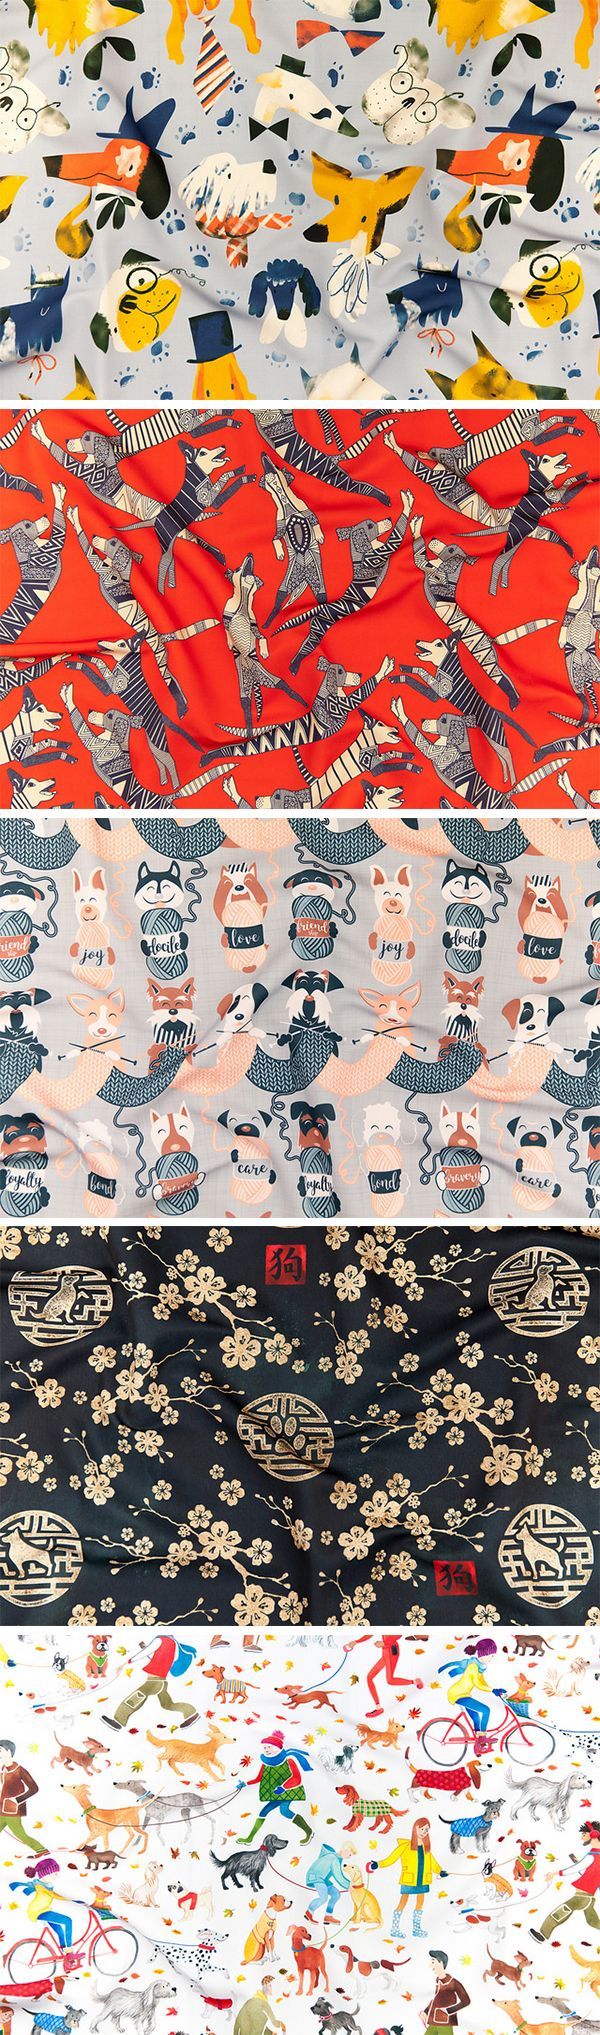 Announcing the Year of the Dog Challenge Winners - February's celebration of the Lunar New Year also welcomes a new zodiac sign, and 2018 is the Year of the Dog. For this week's design challenge, designers were inspired by their 4 legged friends and what the Year of the Dog means to them. #dogs #fabric #doglover #dogmom #dog